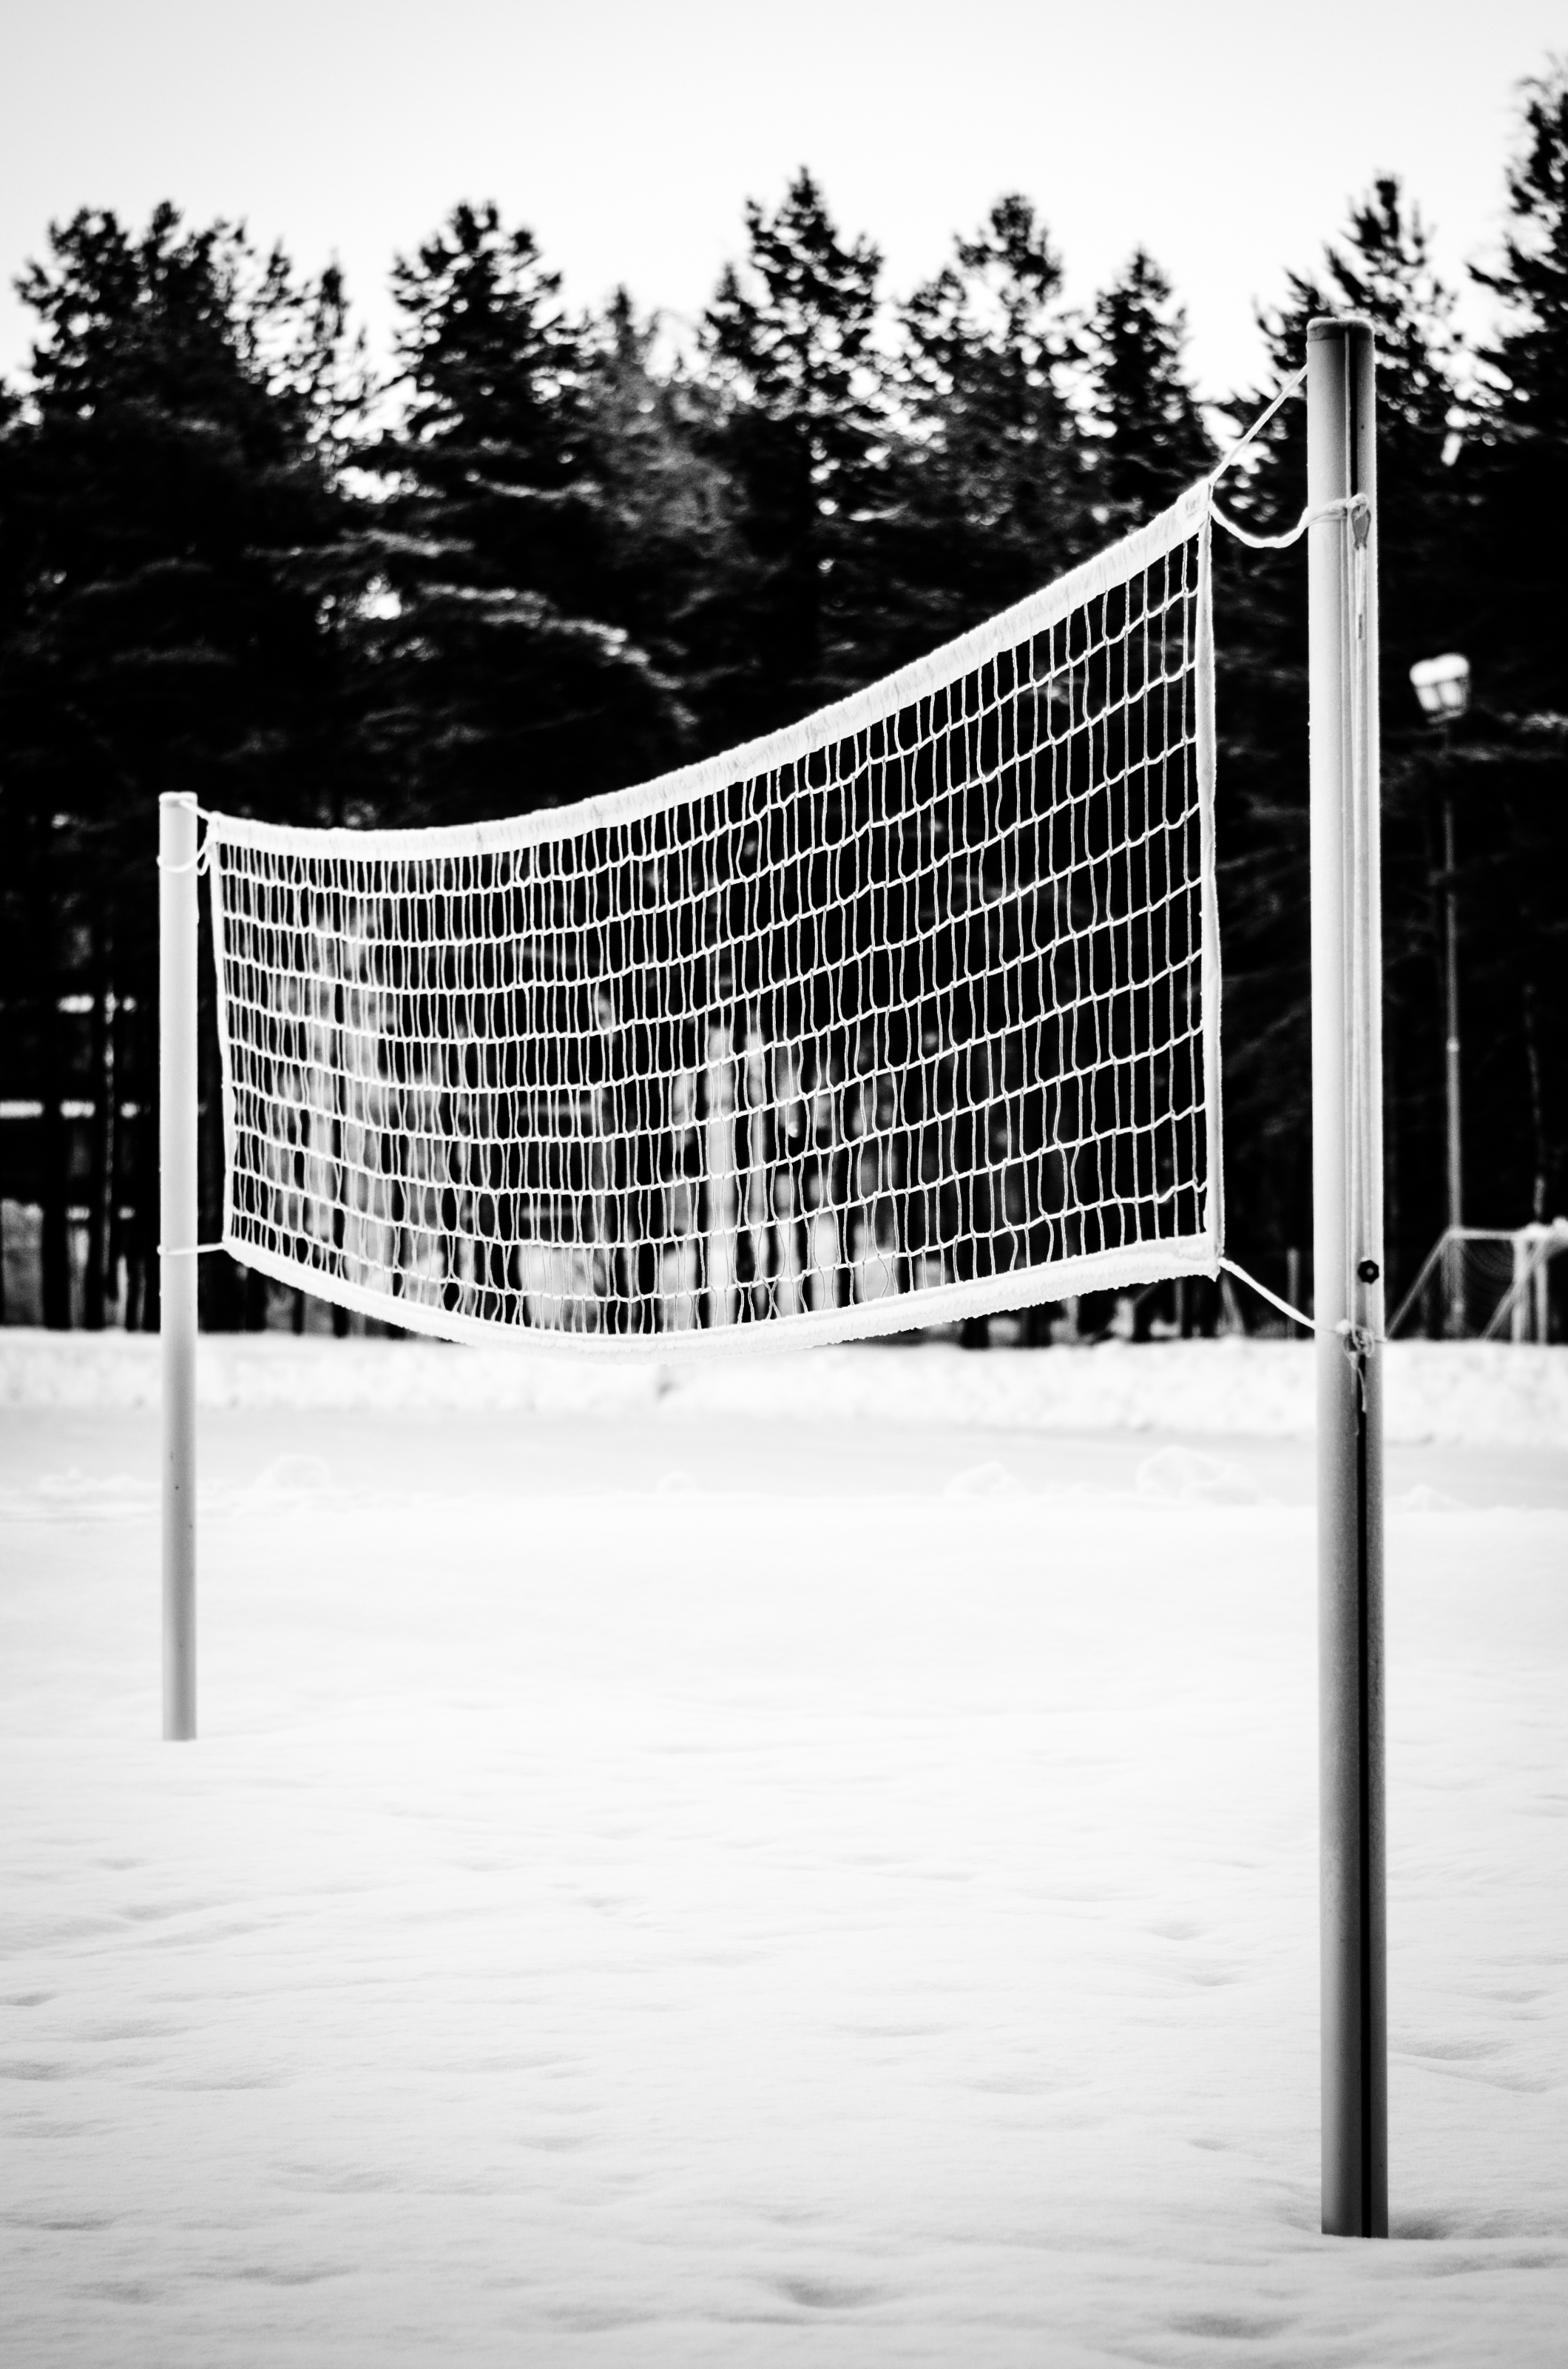 Day 005: Beach volley anyone?